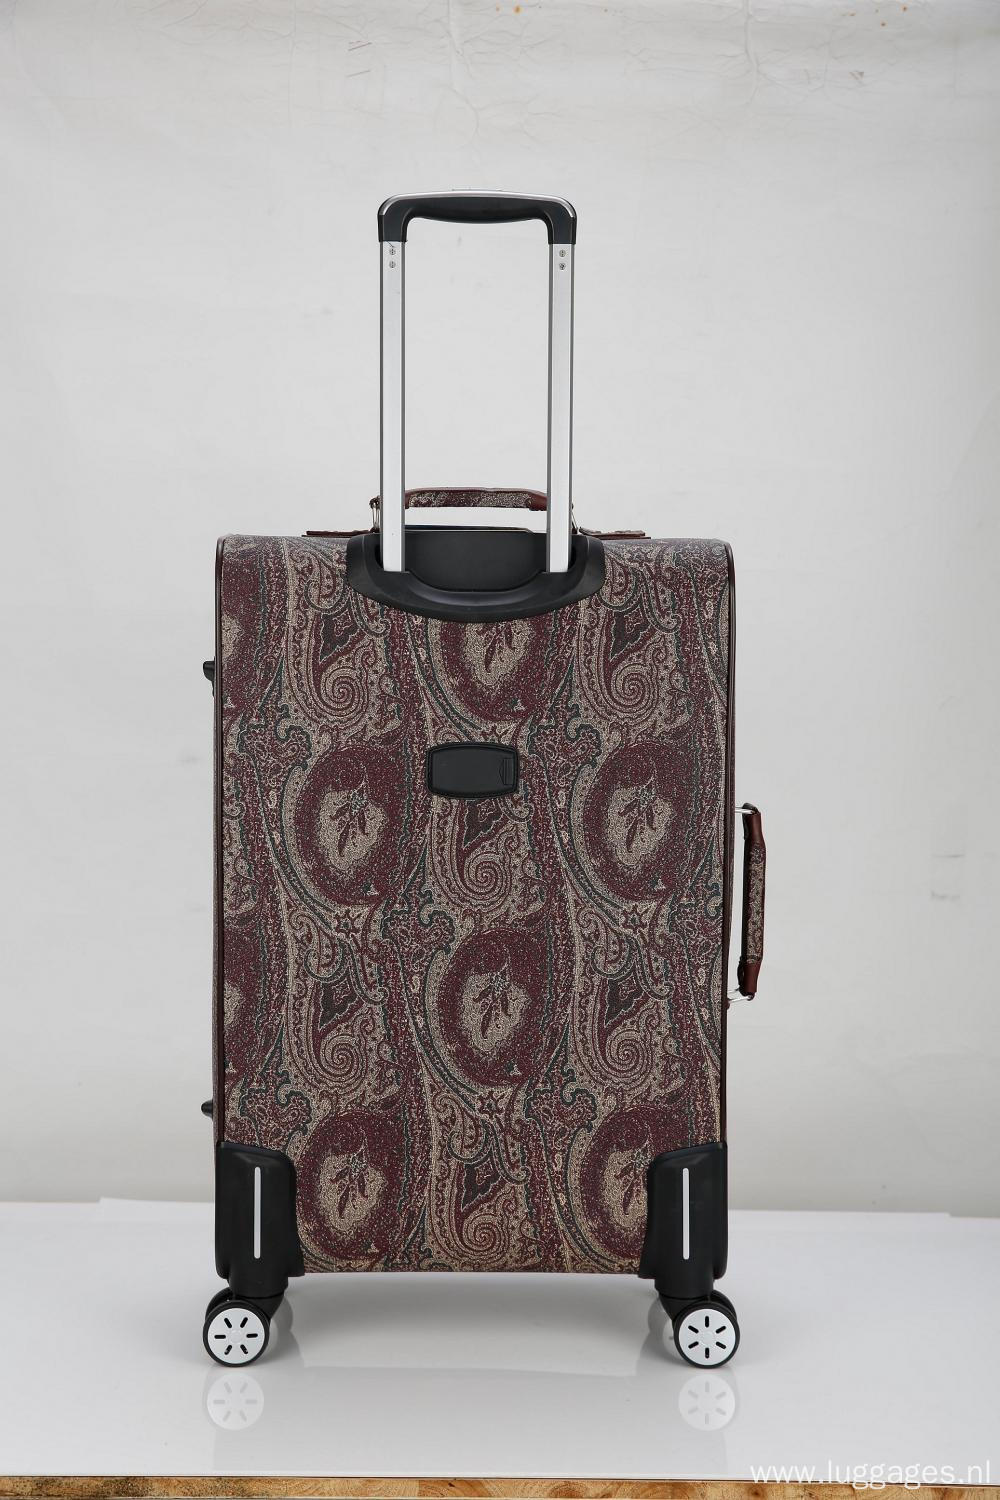 New design trend PU leather luggage